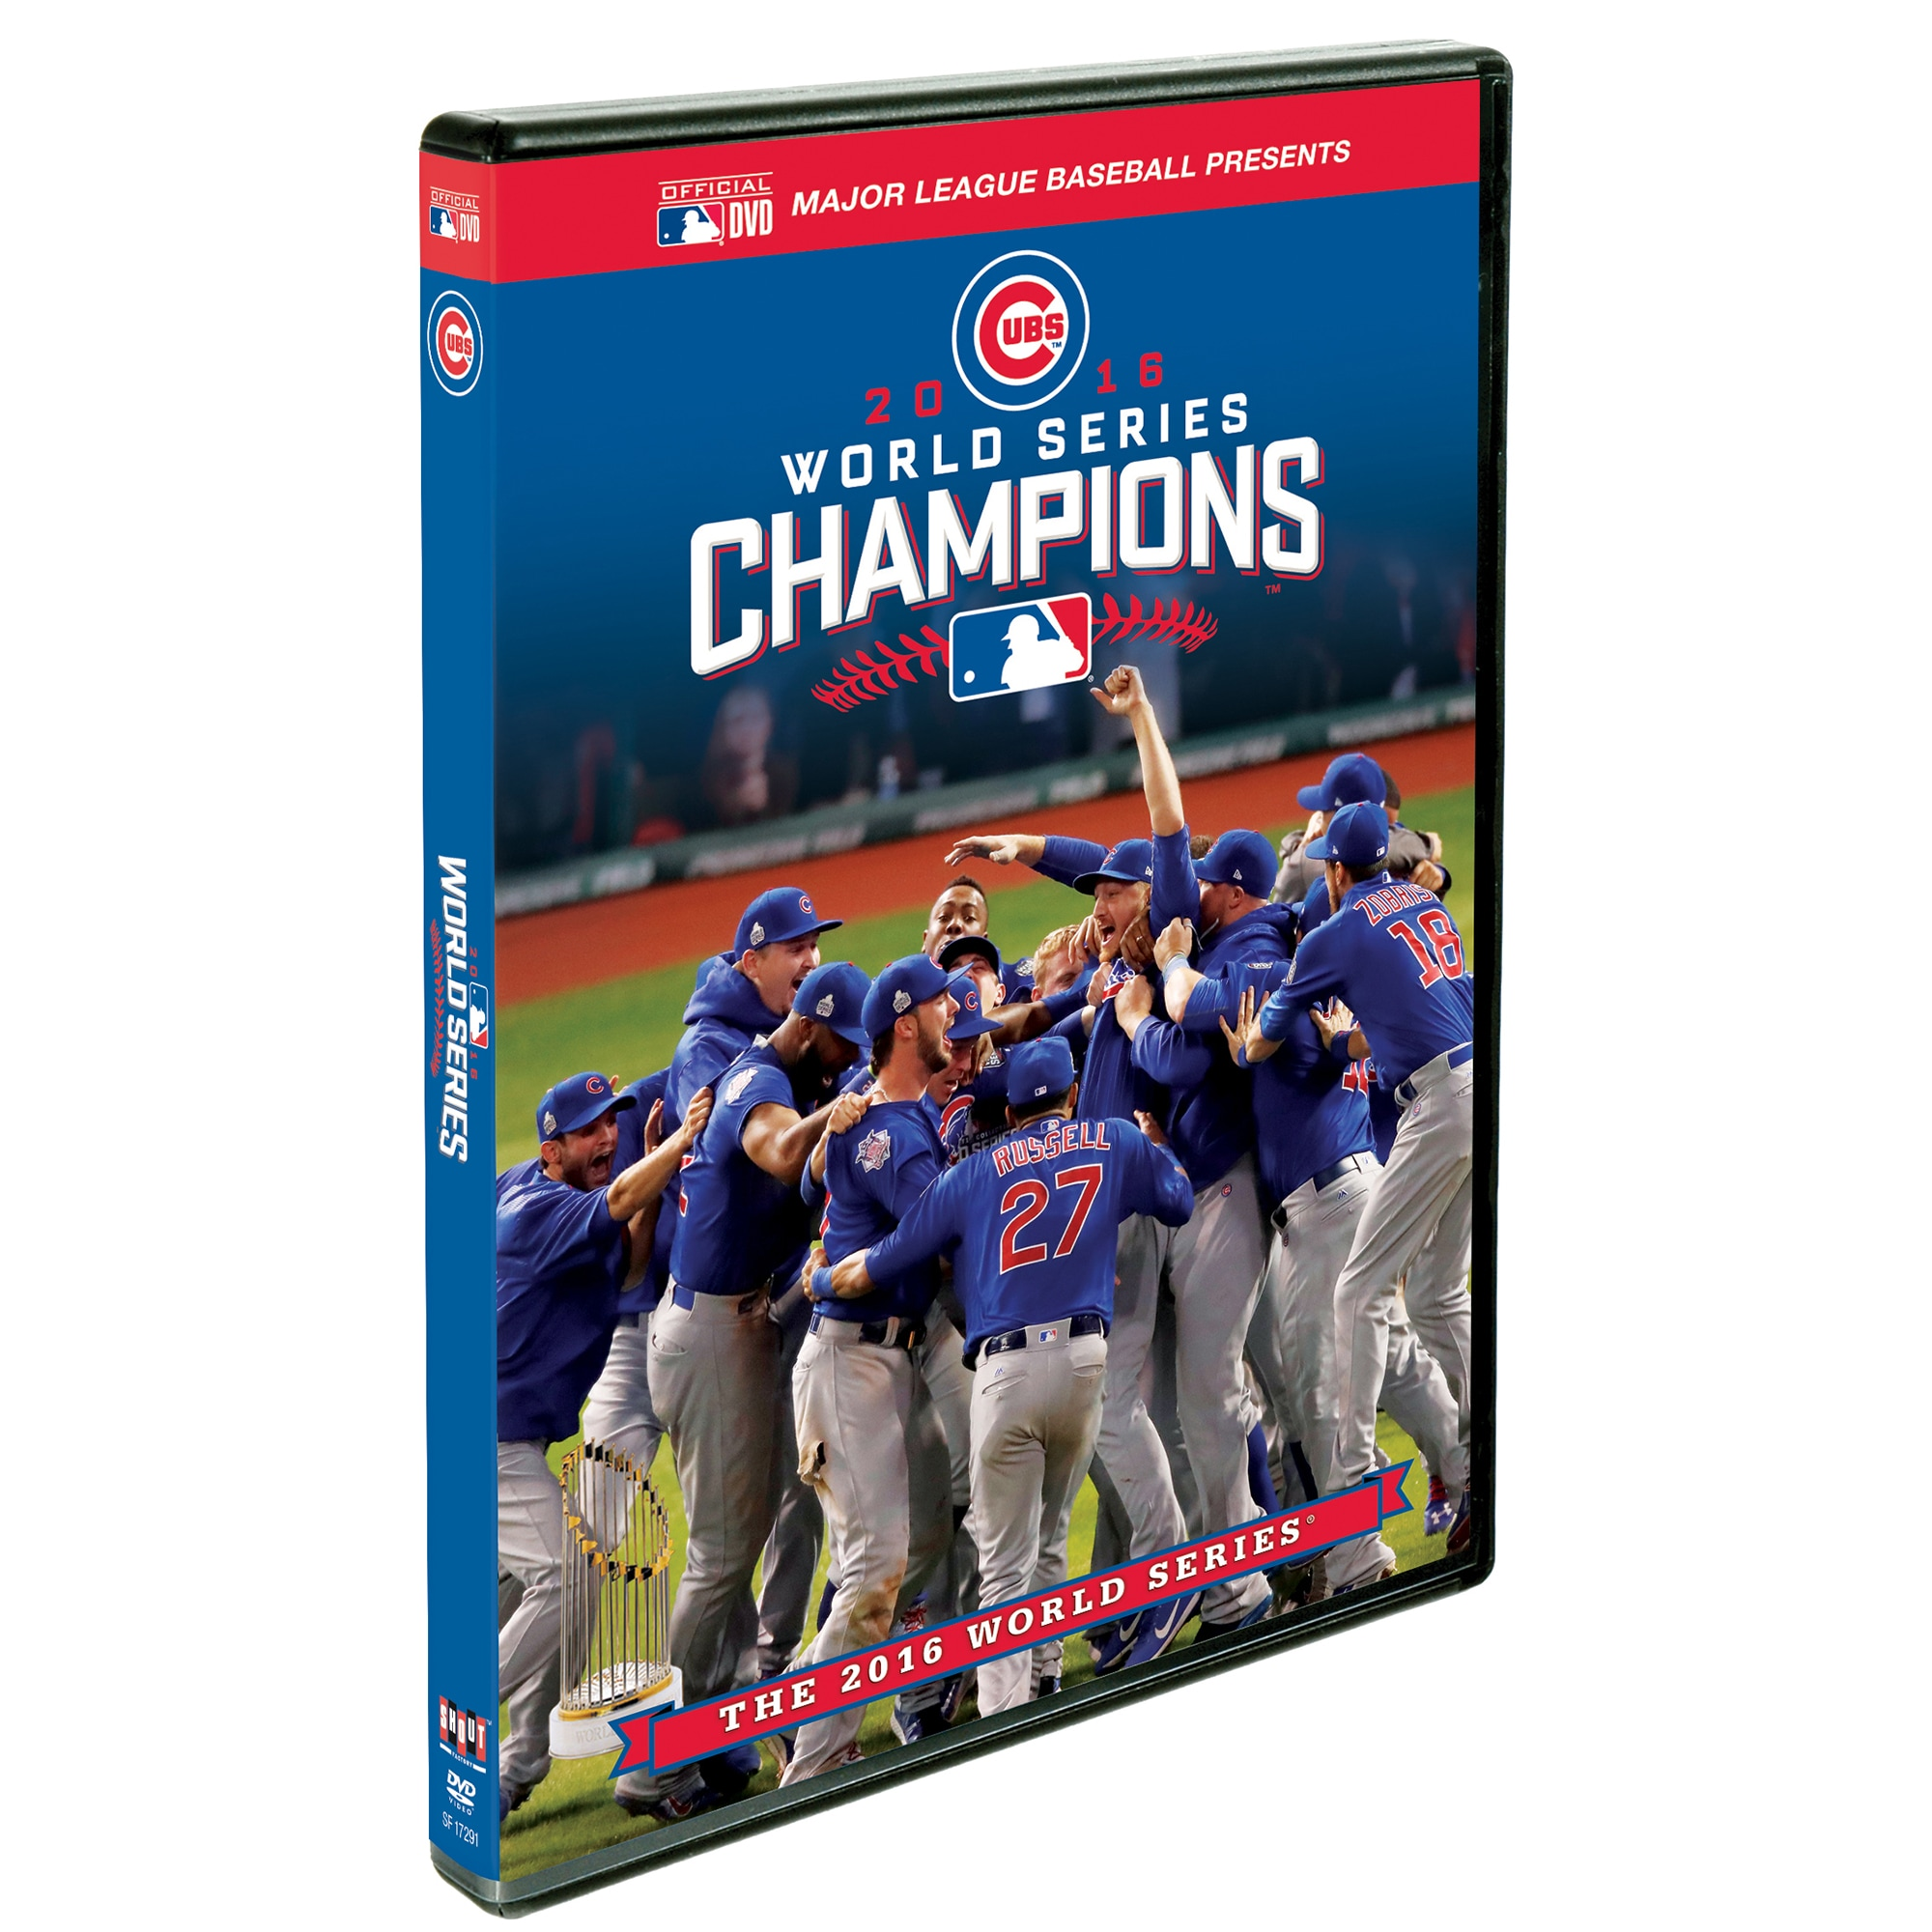 Chicago Cubs 2016 World Series Champions Commemorative DVD